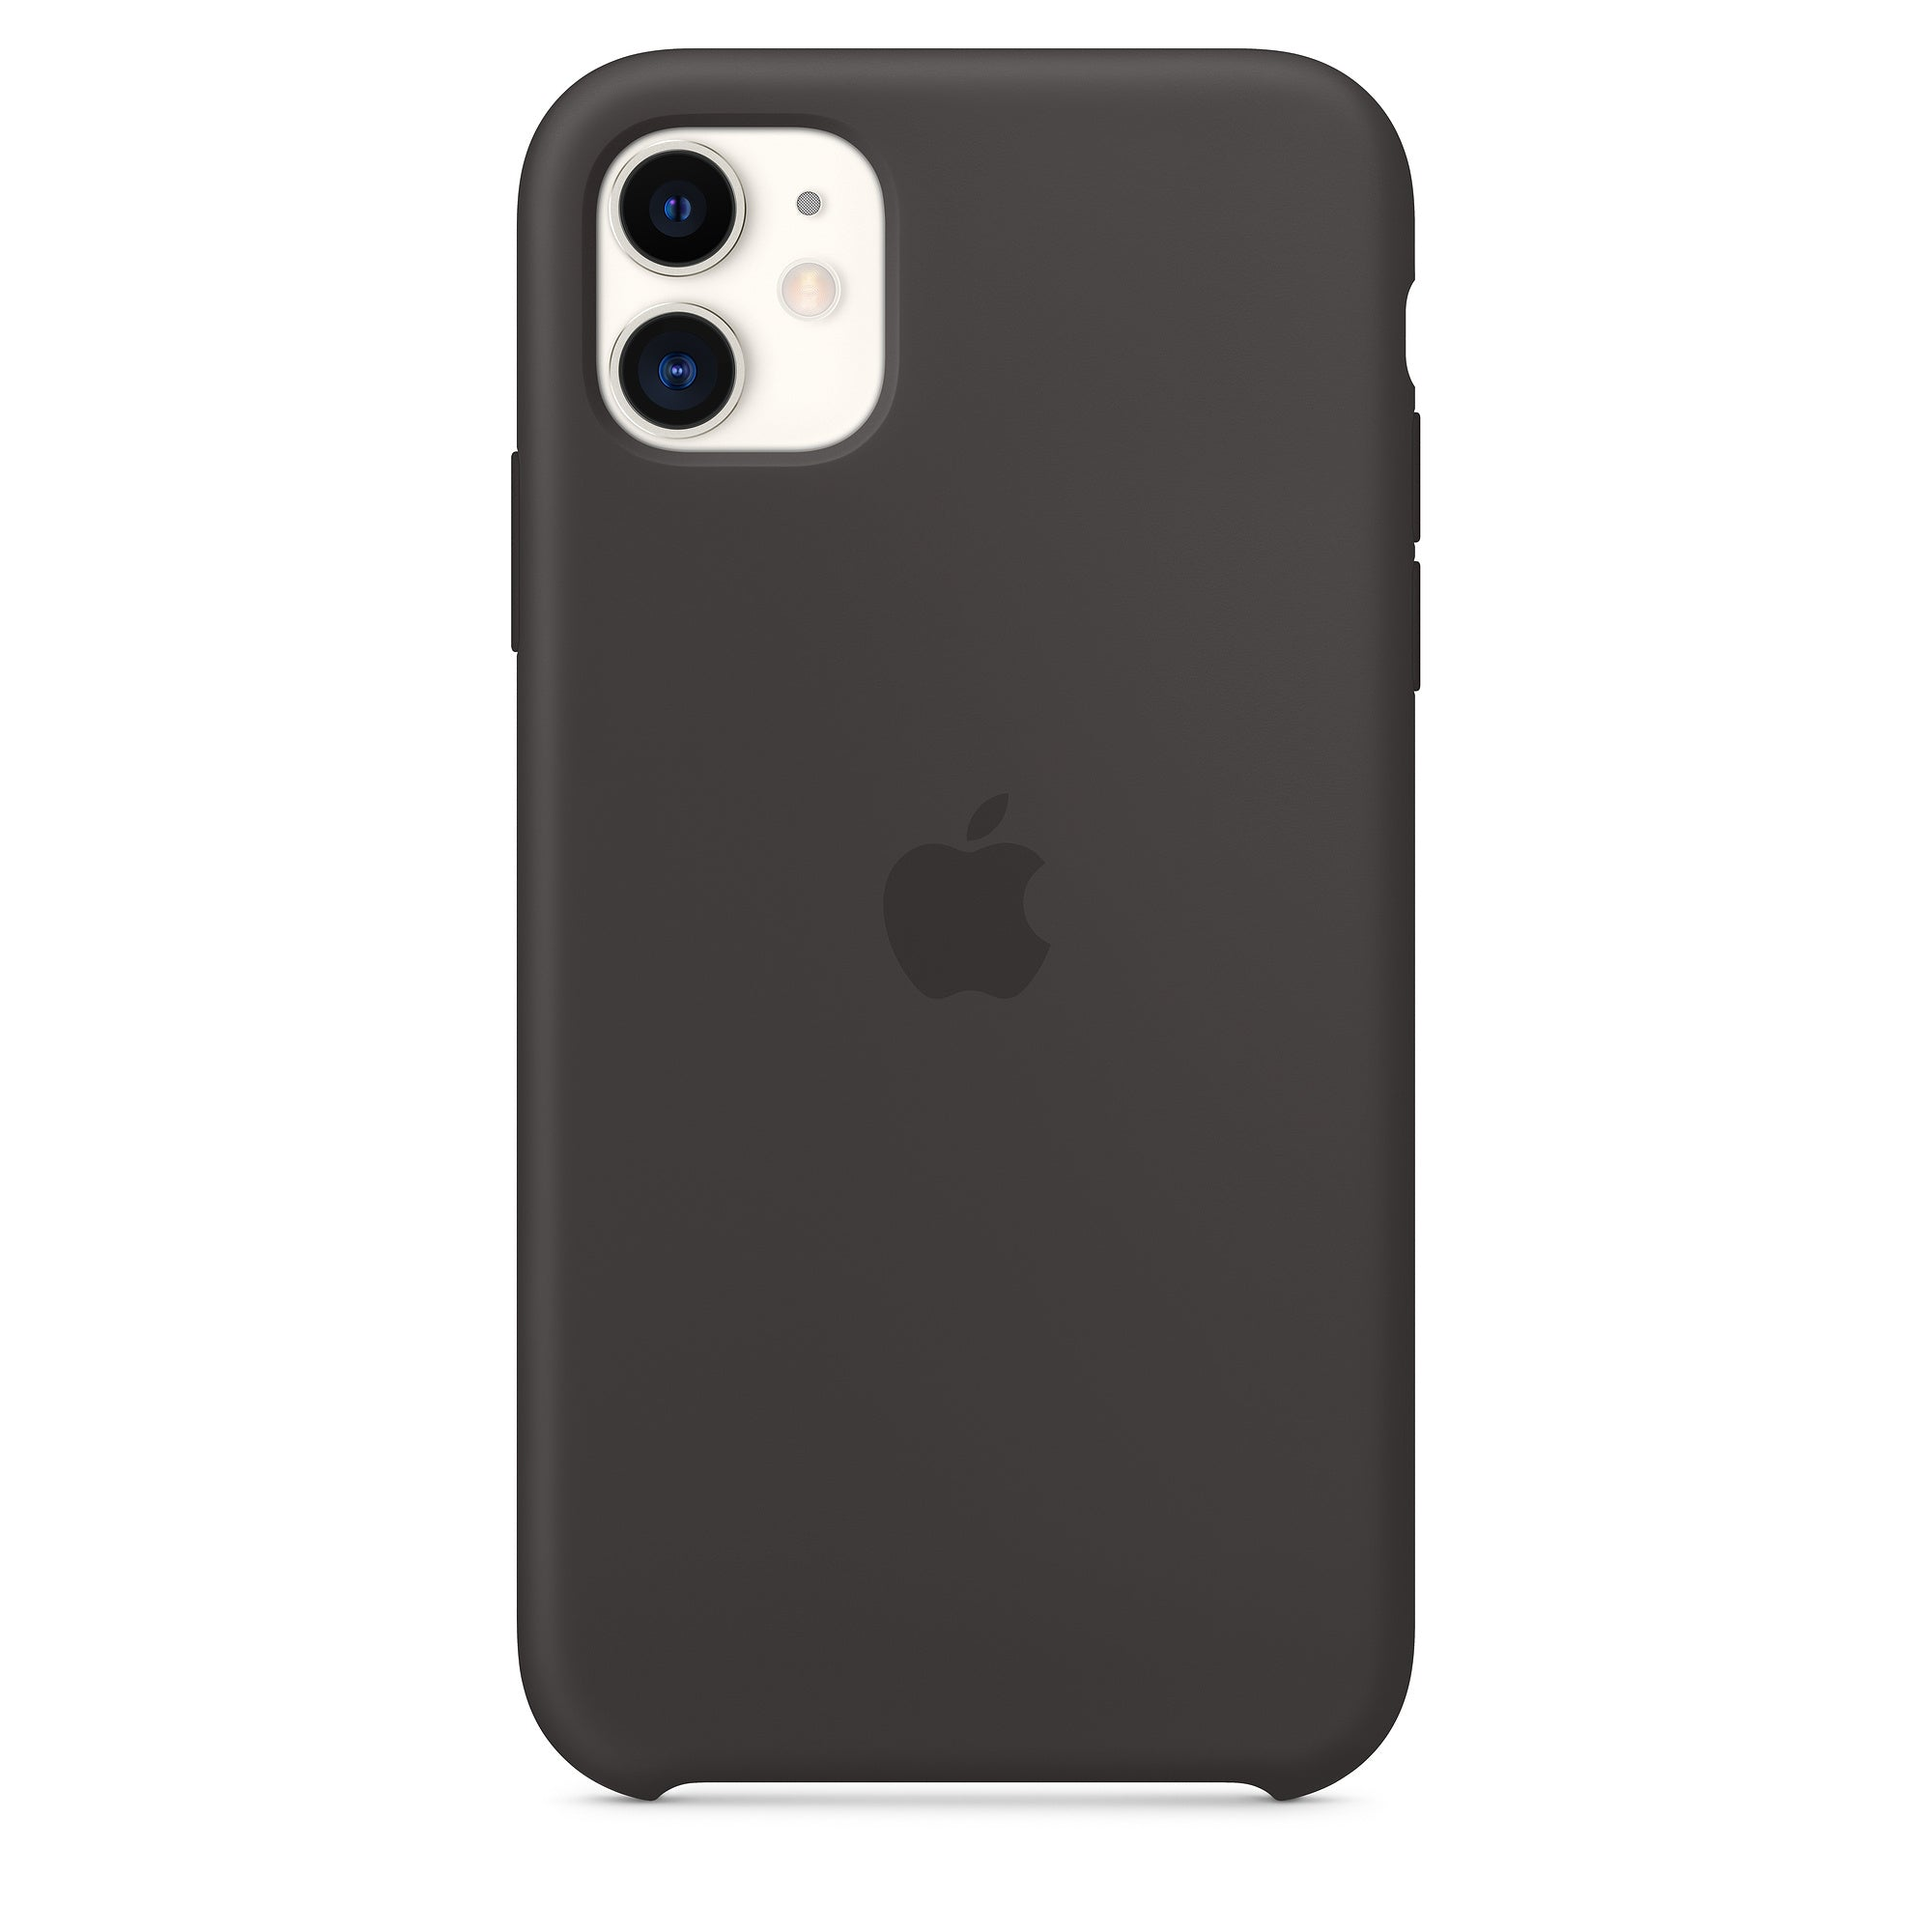 Silicon Case For iPhone 11 - Black - Mobilegadgets360